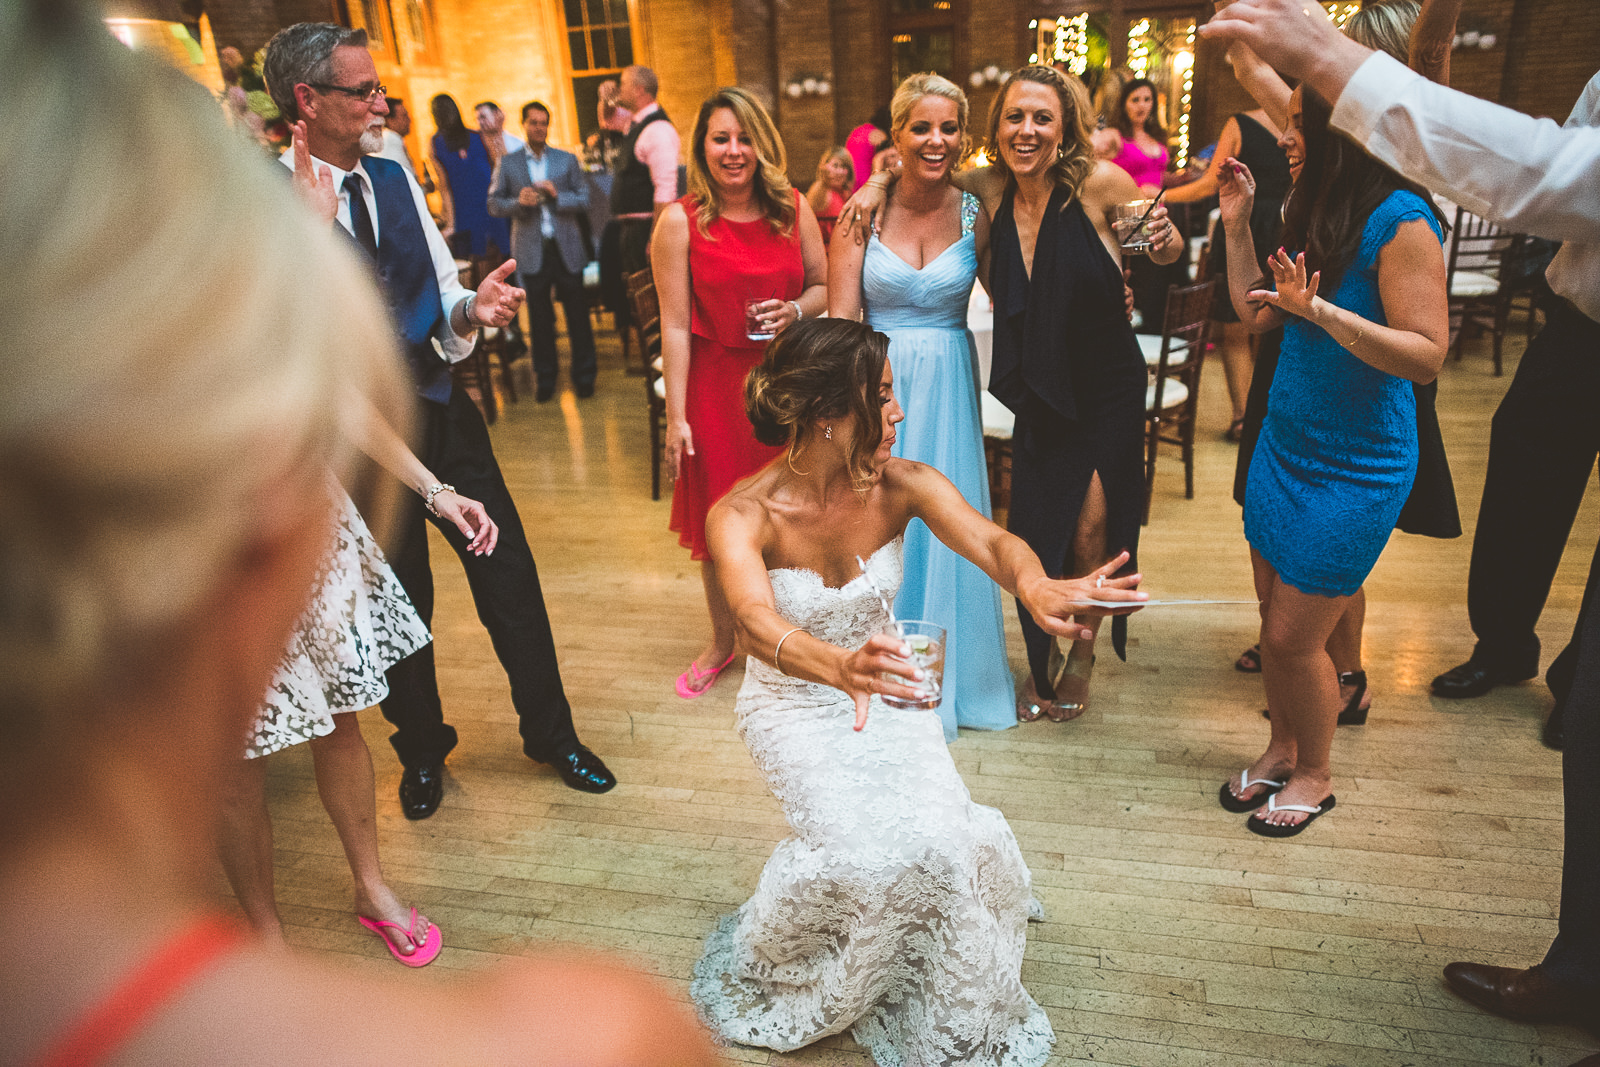 76 dancing - Natalie + Alan // Chicago Wedding Photographer at Cafe Brauer